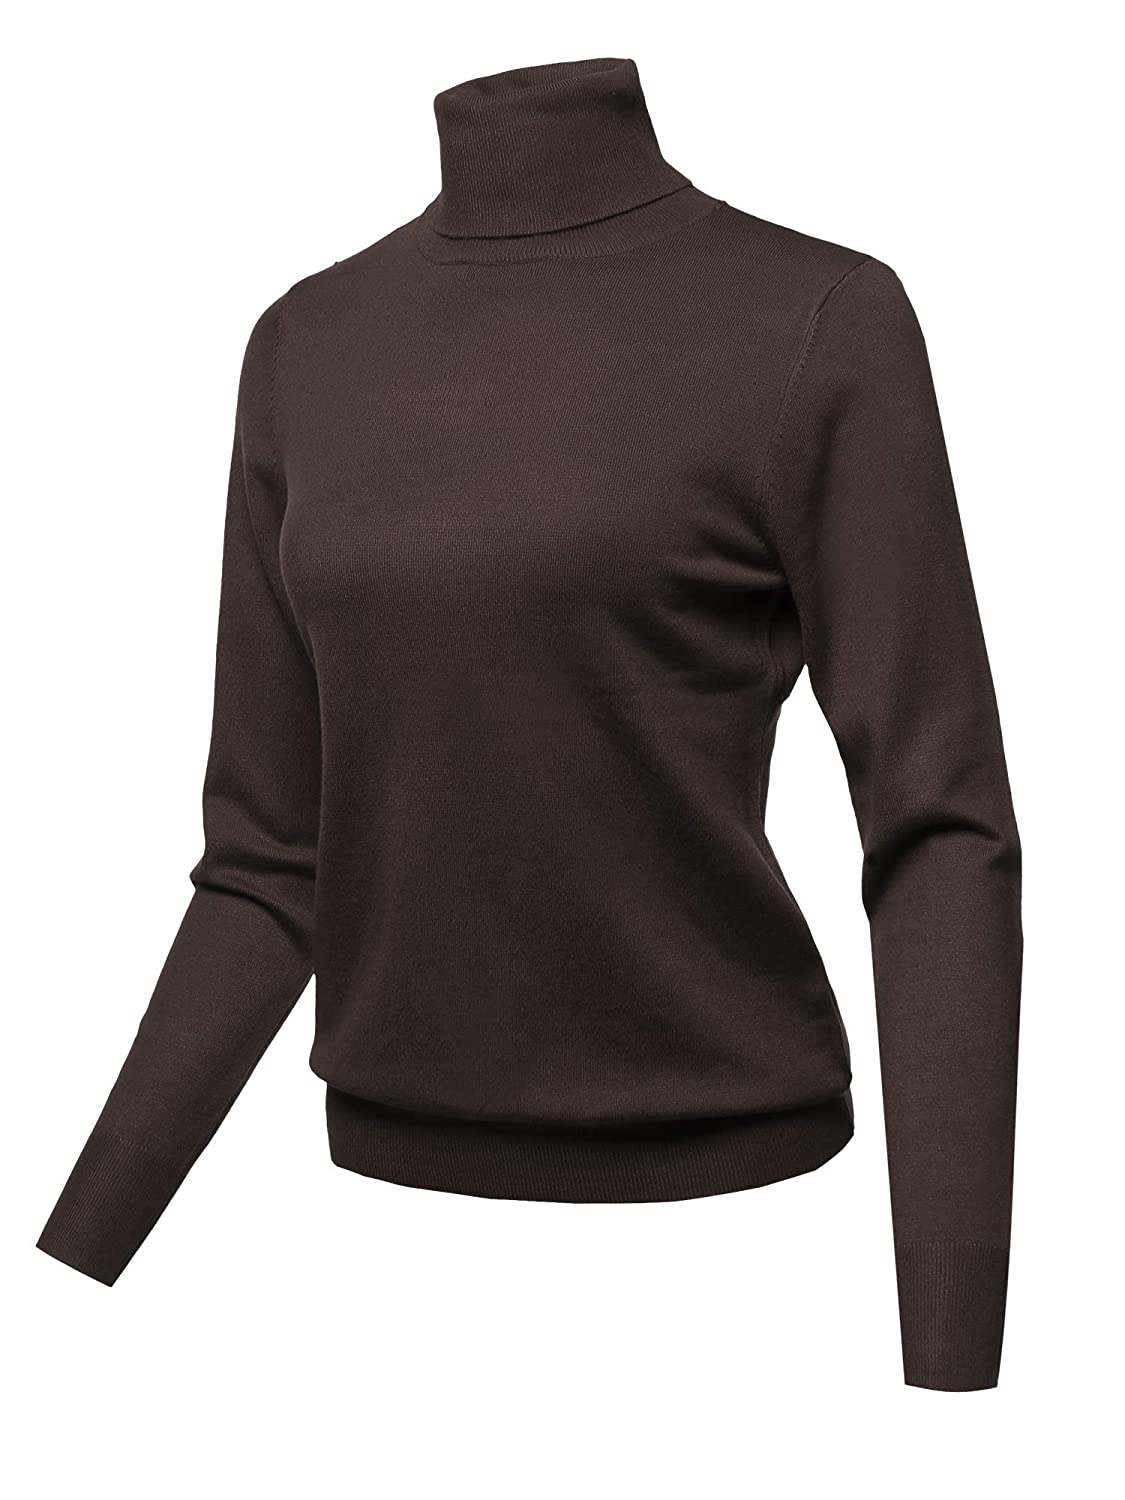 Awesome21 SWEATER レディース B07L6T64TC Small|Aawswl0016 Brown Aawswl0016 Brown Small